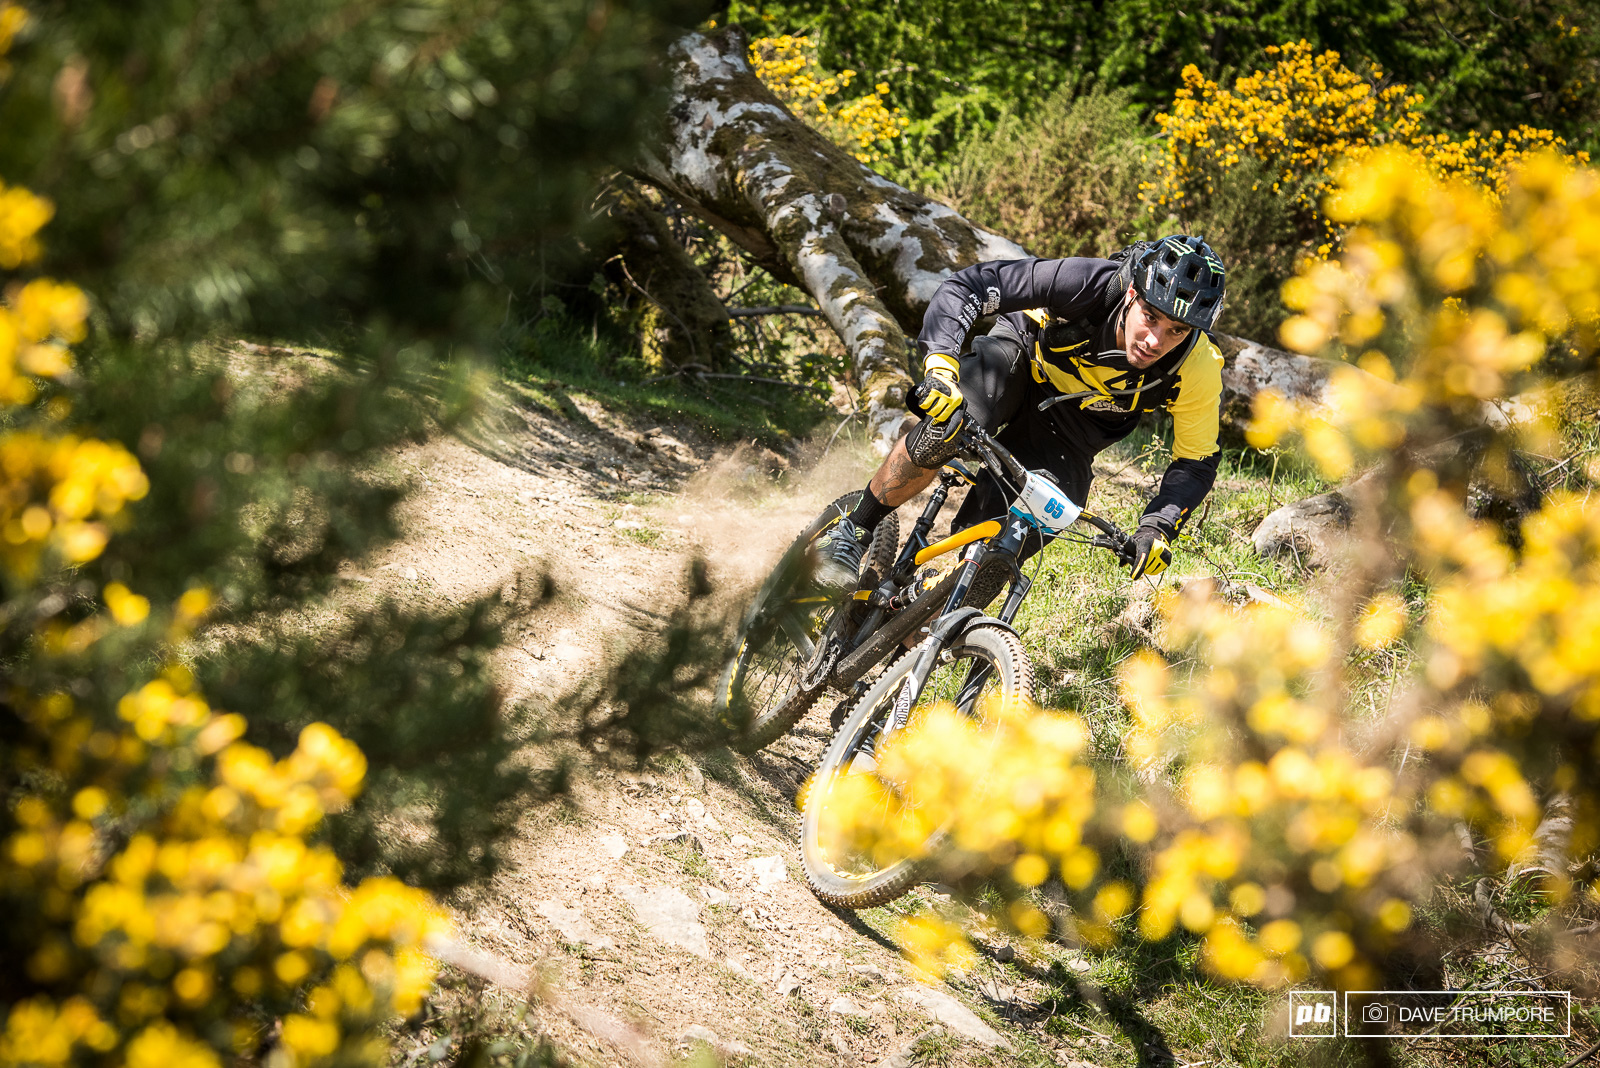 Flat pedals on the gas. What a day for Sam Hill to take 2nd just a few seconds back after 25 minutes of racing.